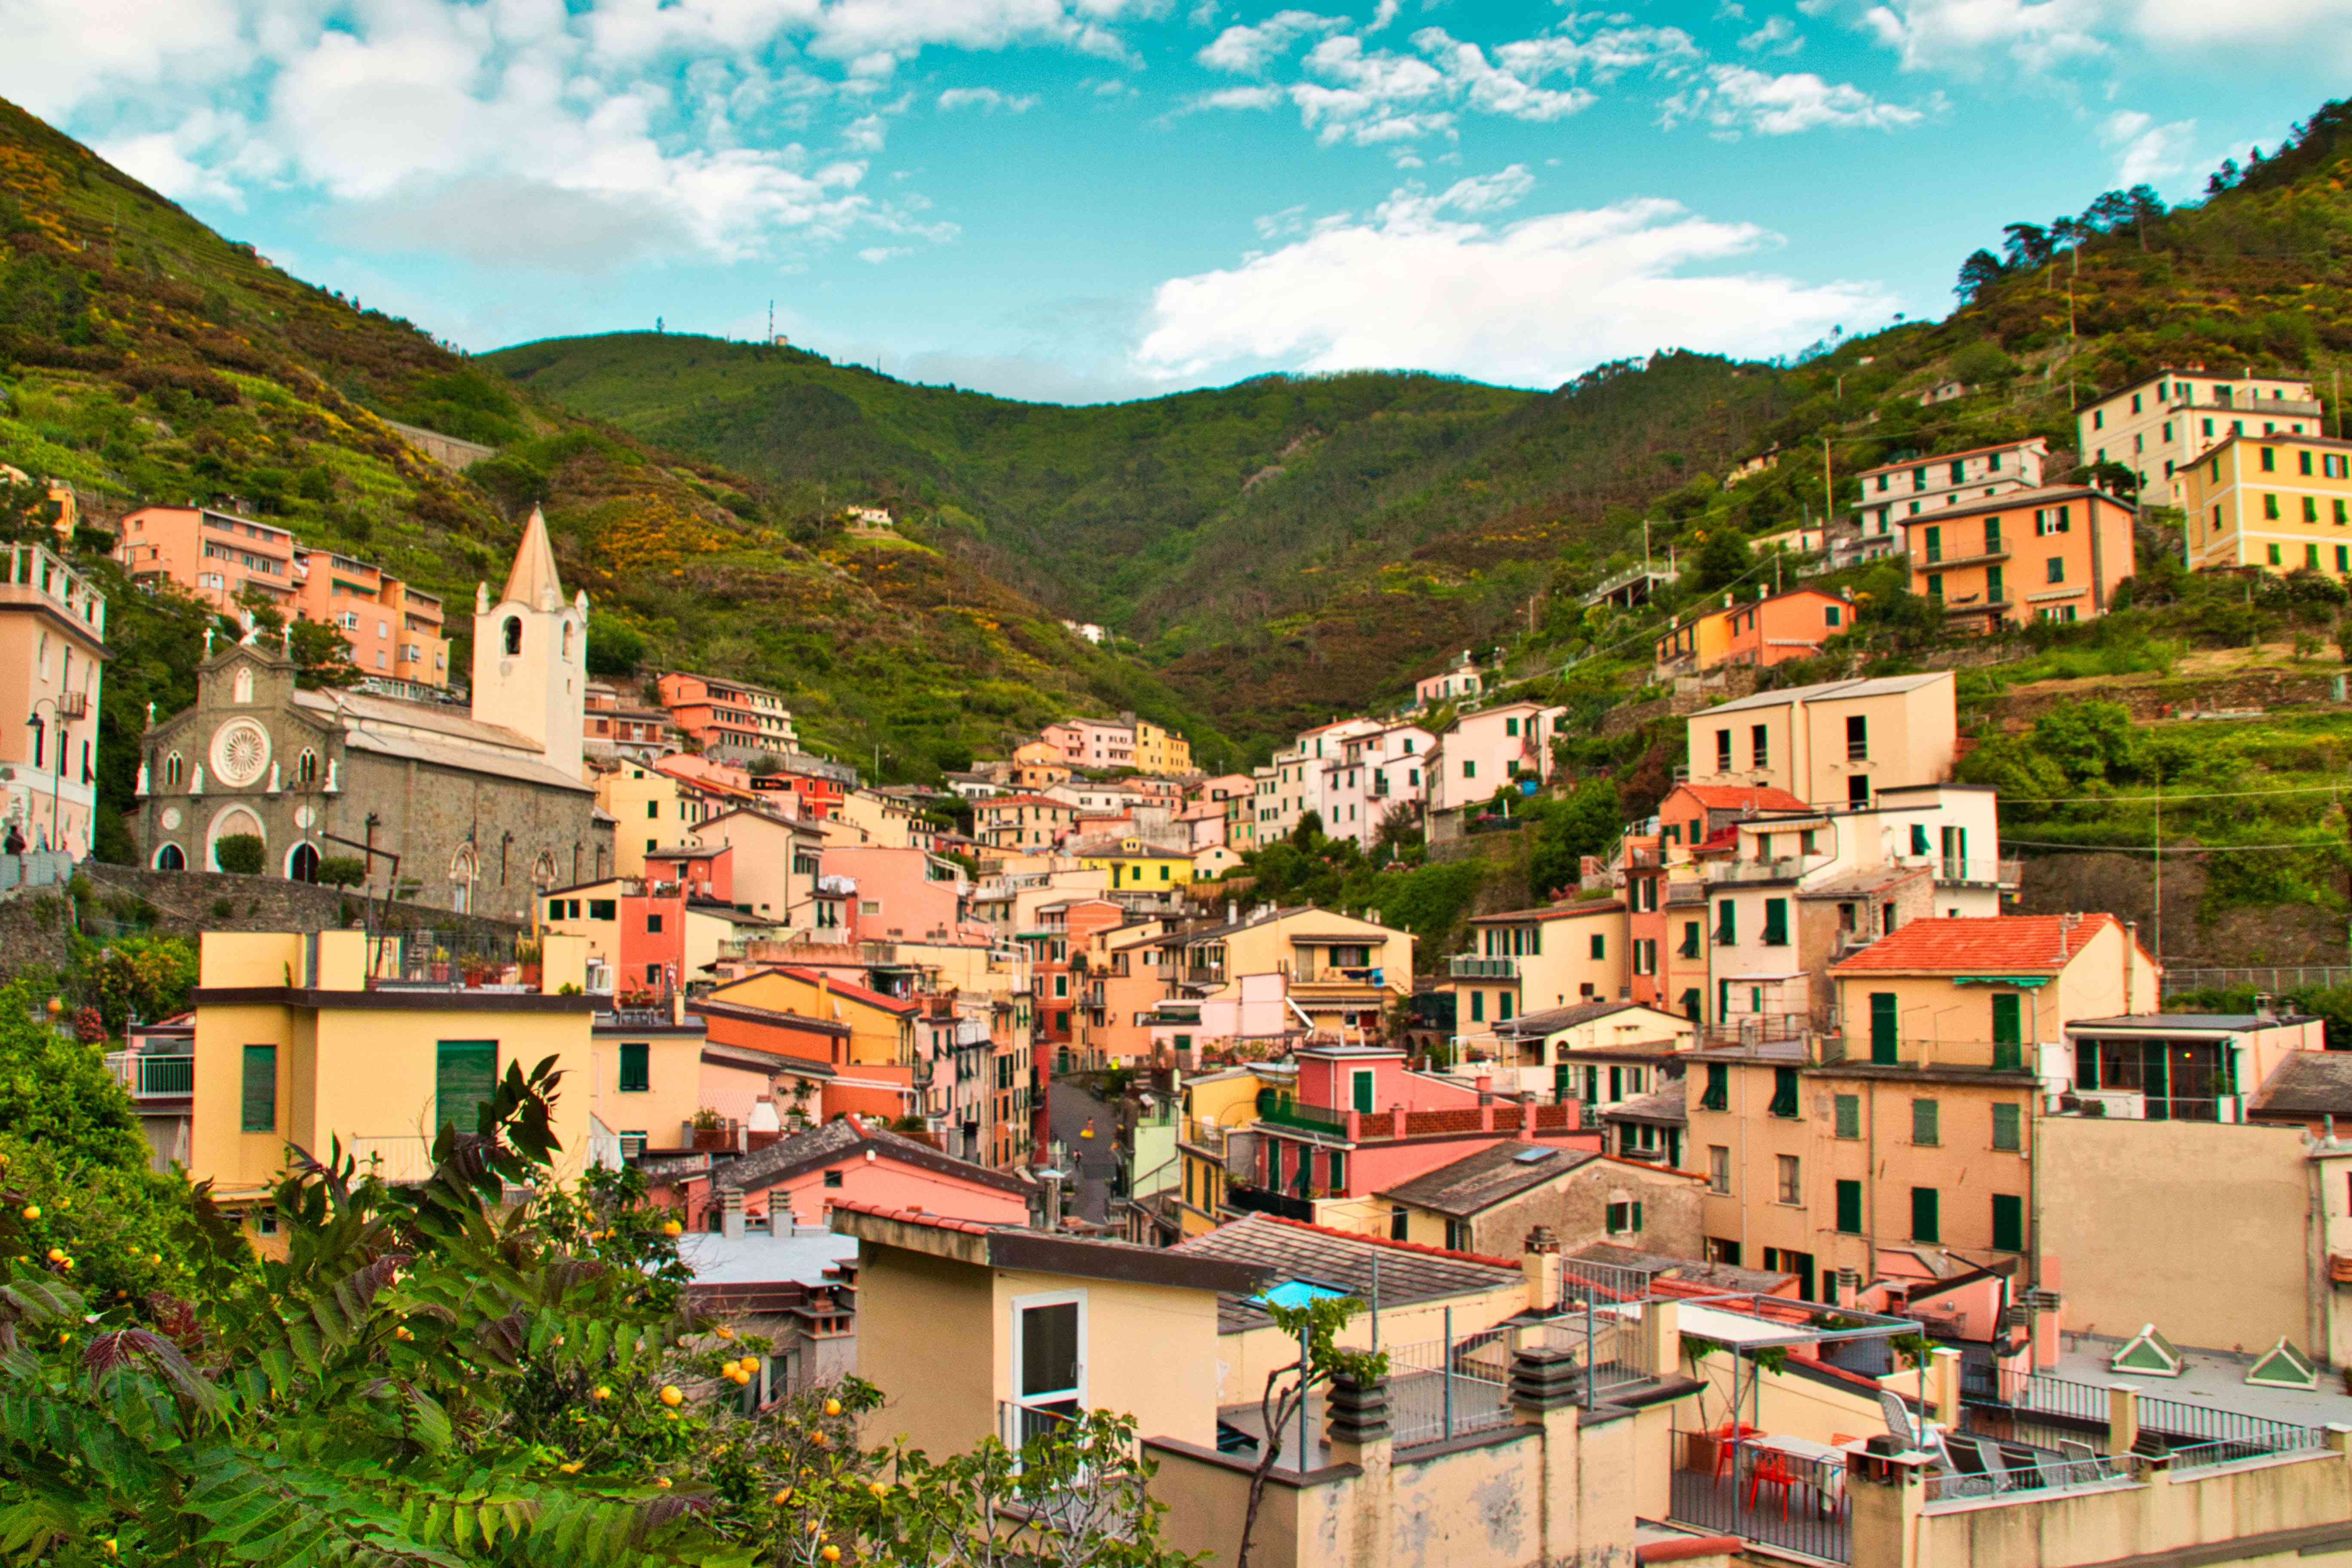 Colorful buildings in the valley of mountains in the Gulf of Poets